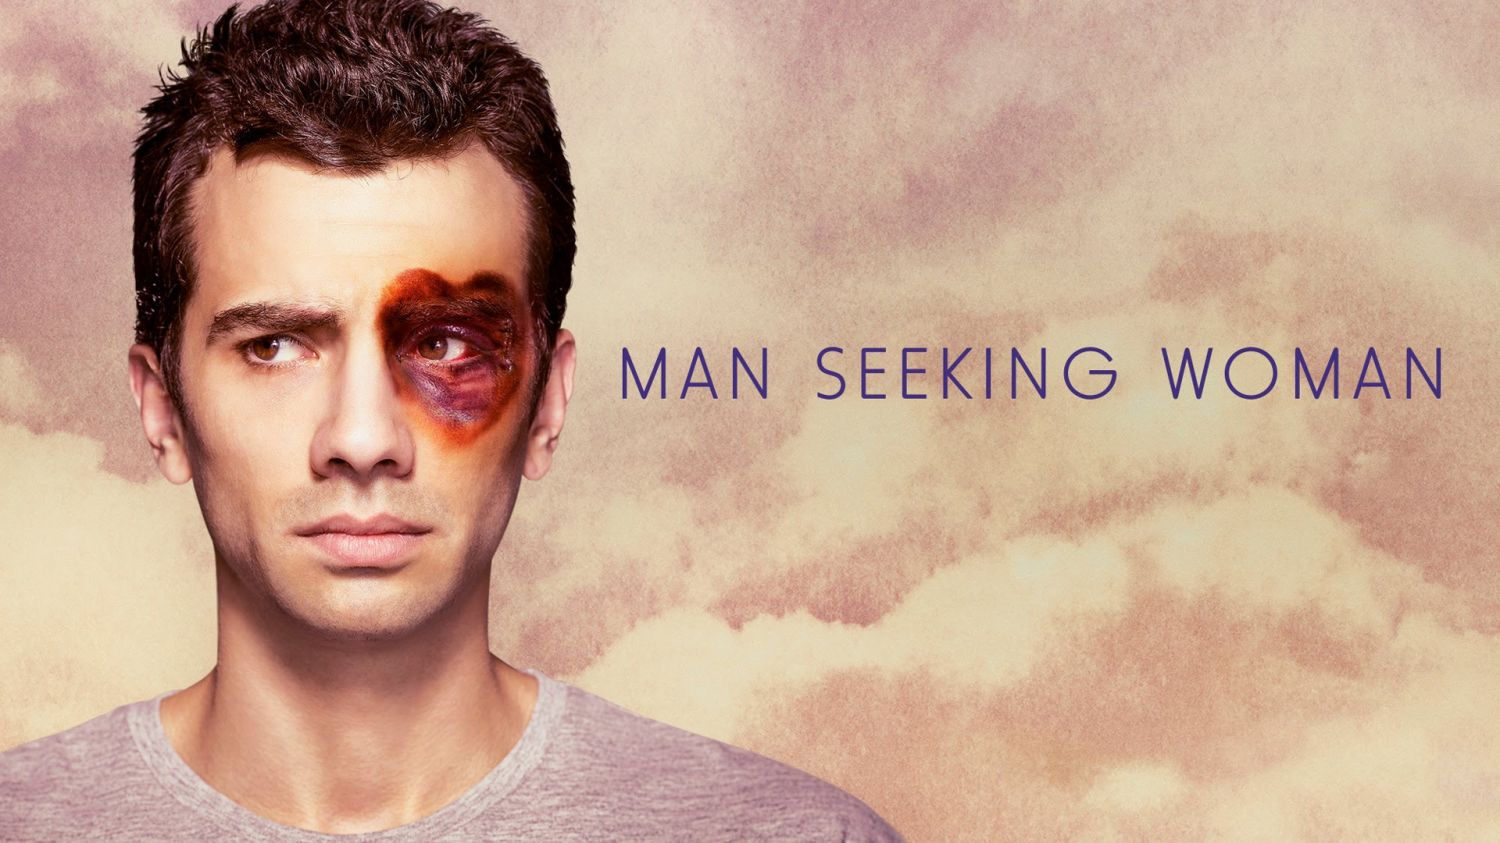 Who created man seeking women